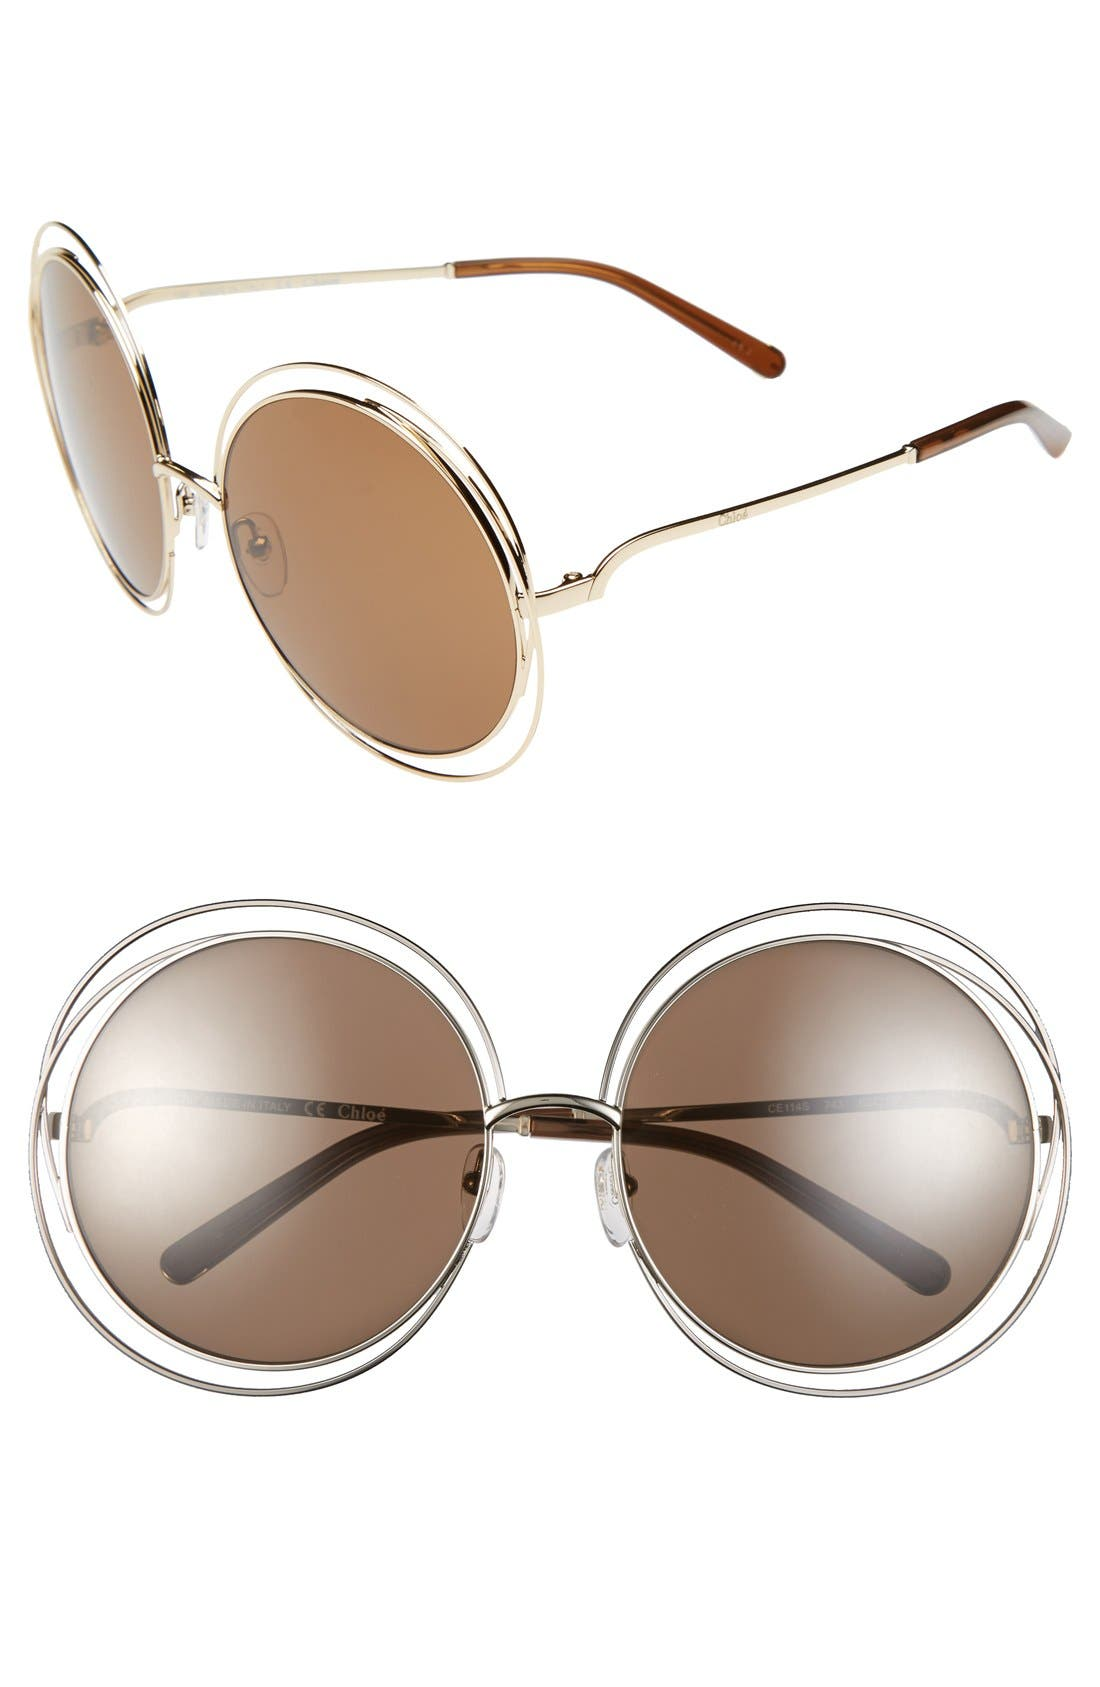 Chloé 62mm Oversize Sunglasses